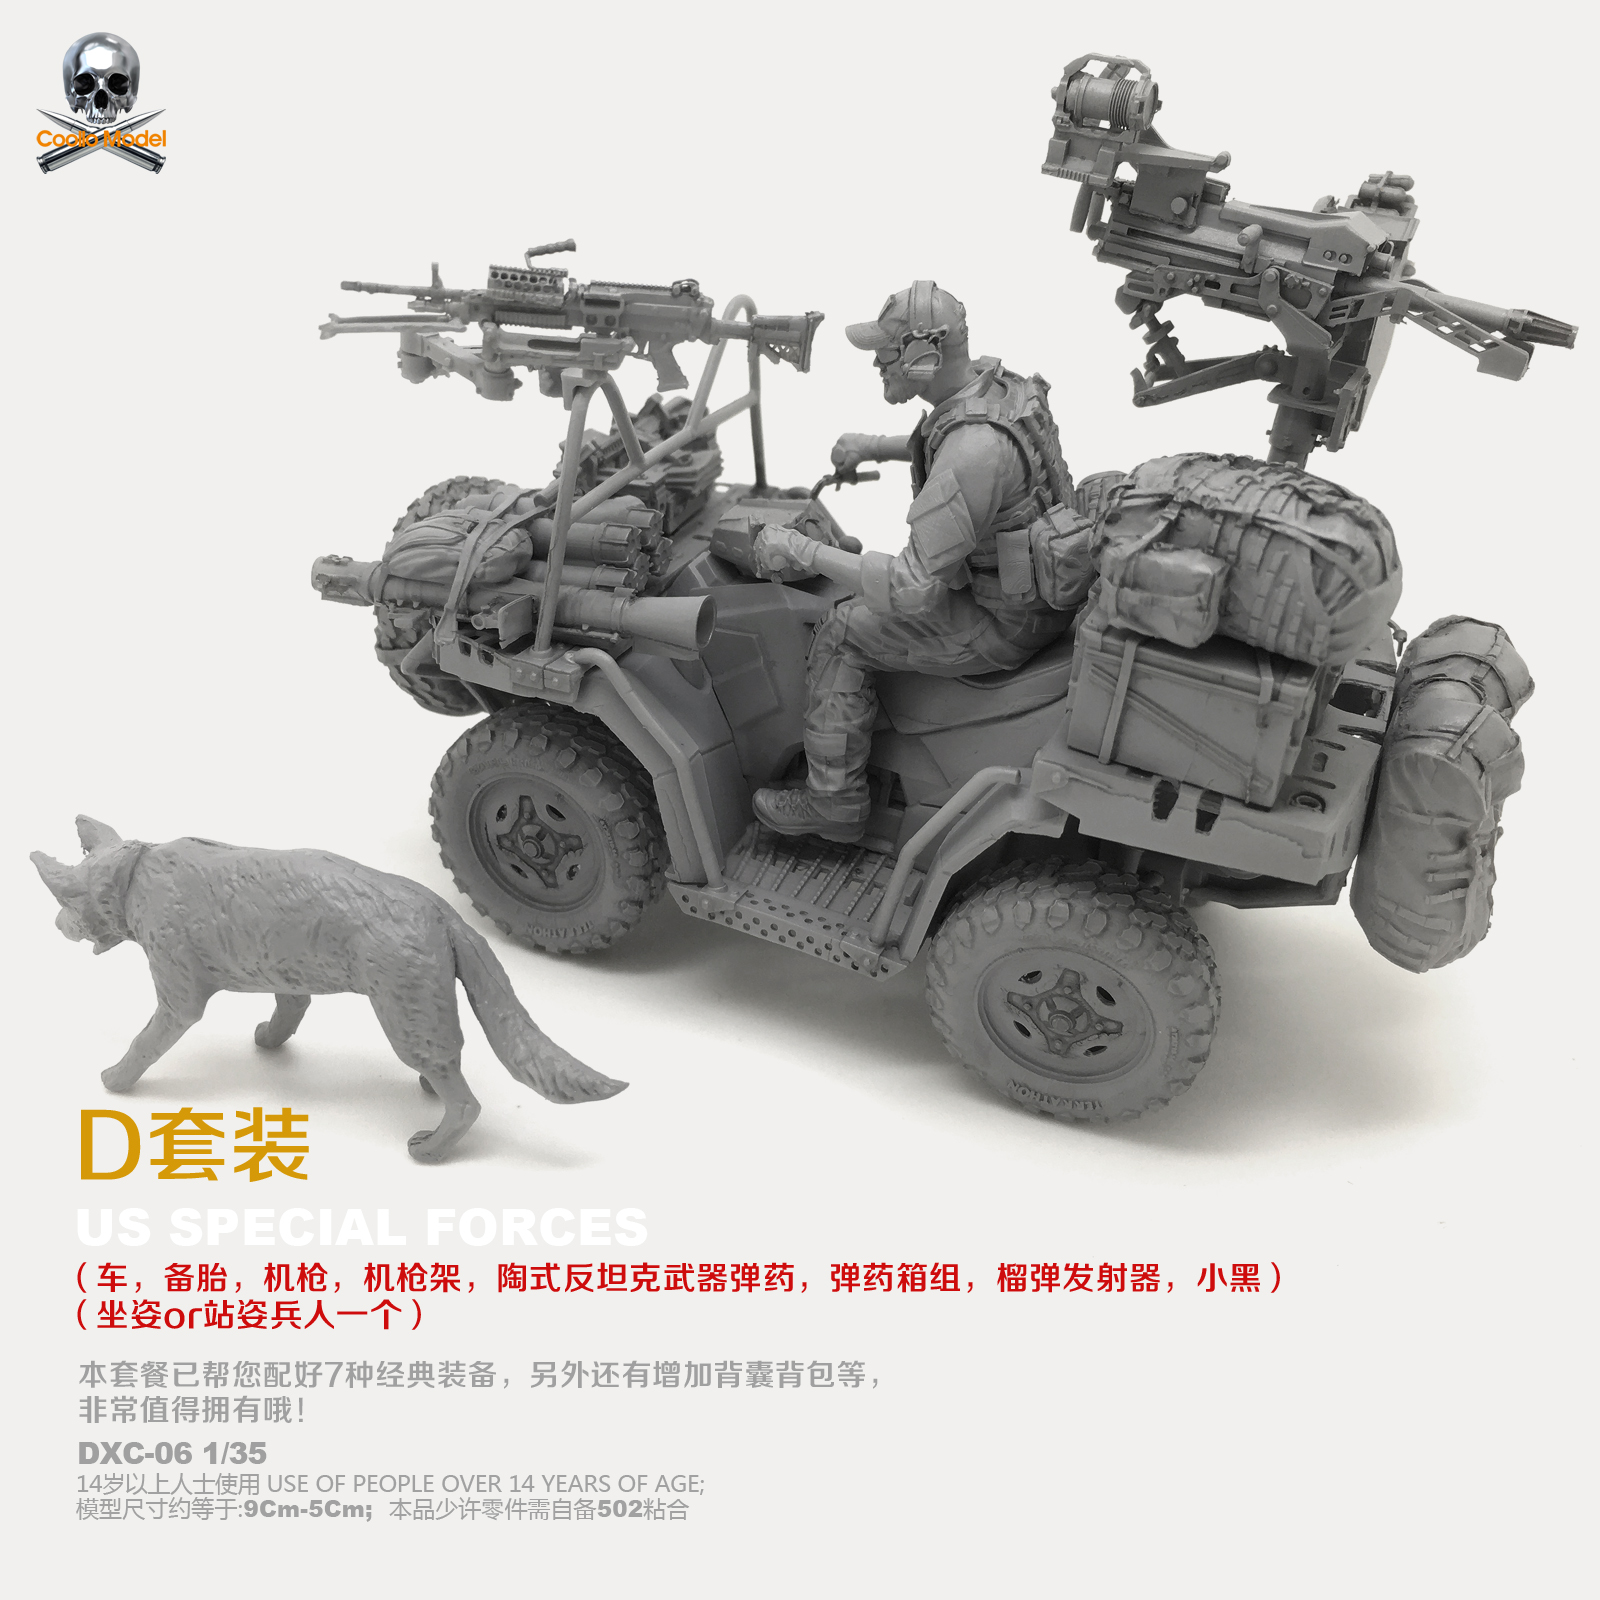 1/35 Resin Kits US Navy SEALs And Terrain Vehicles (D Set) Resin Model Self-asssembled DXC-06